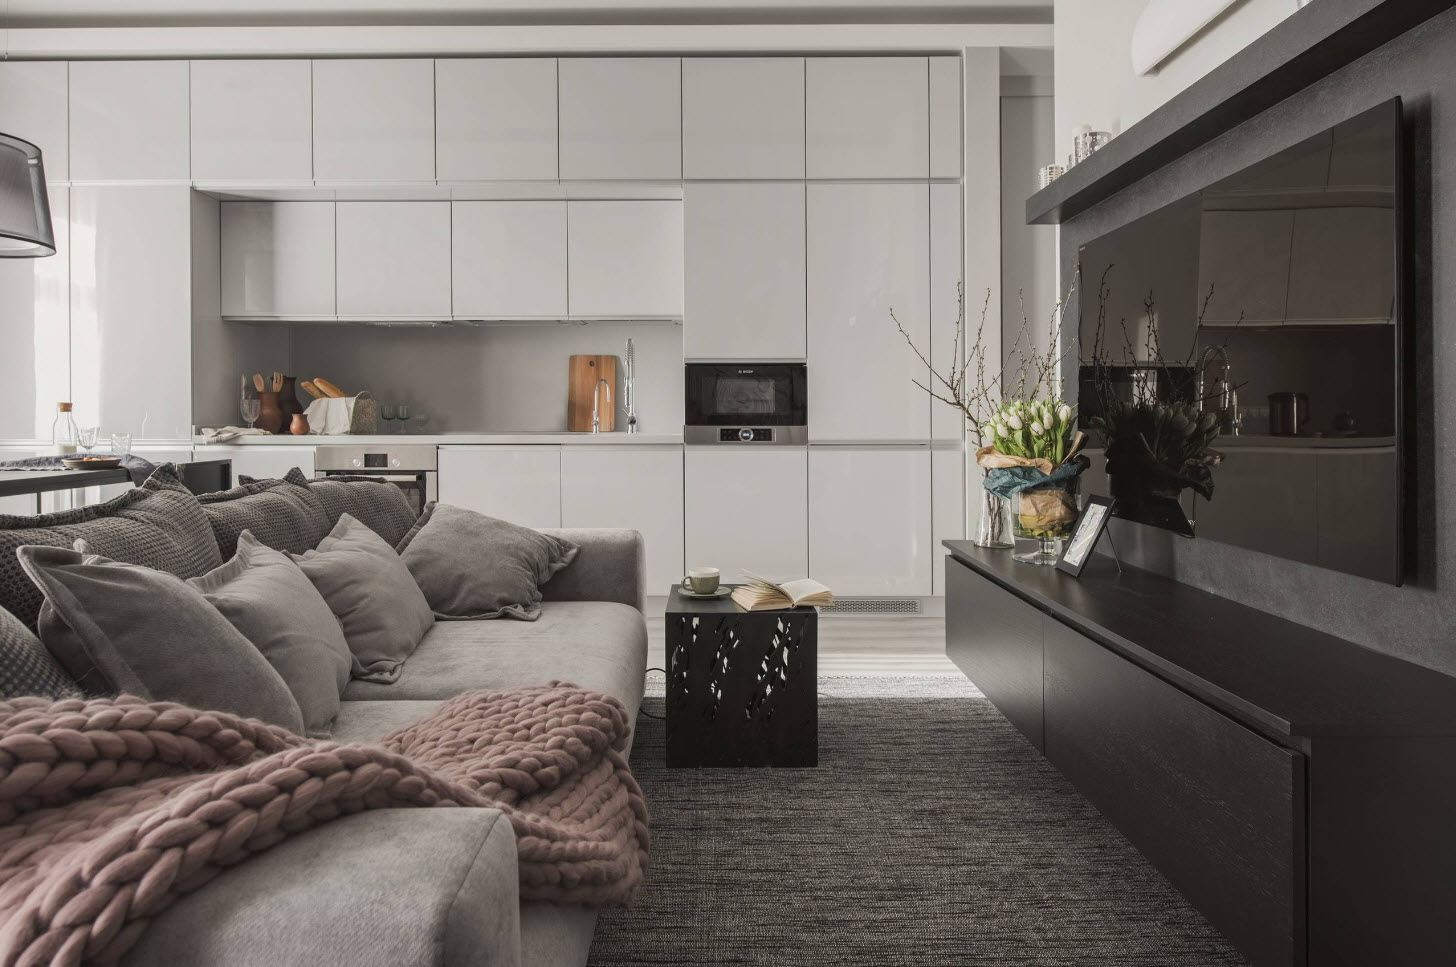 Modular furniture set at the living room with minimalistic kitchen zone